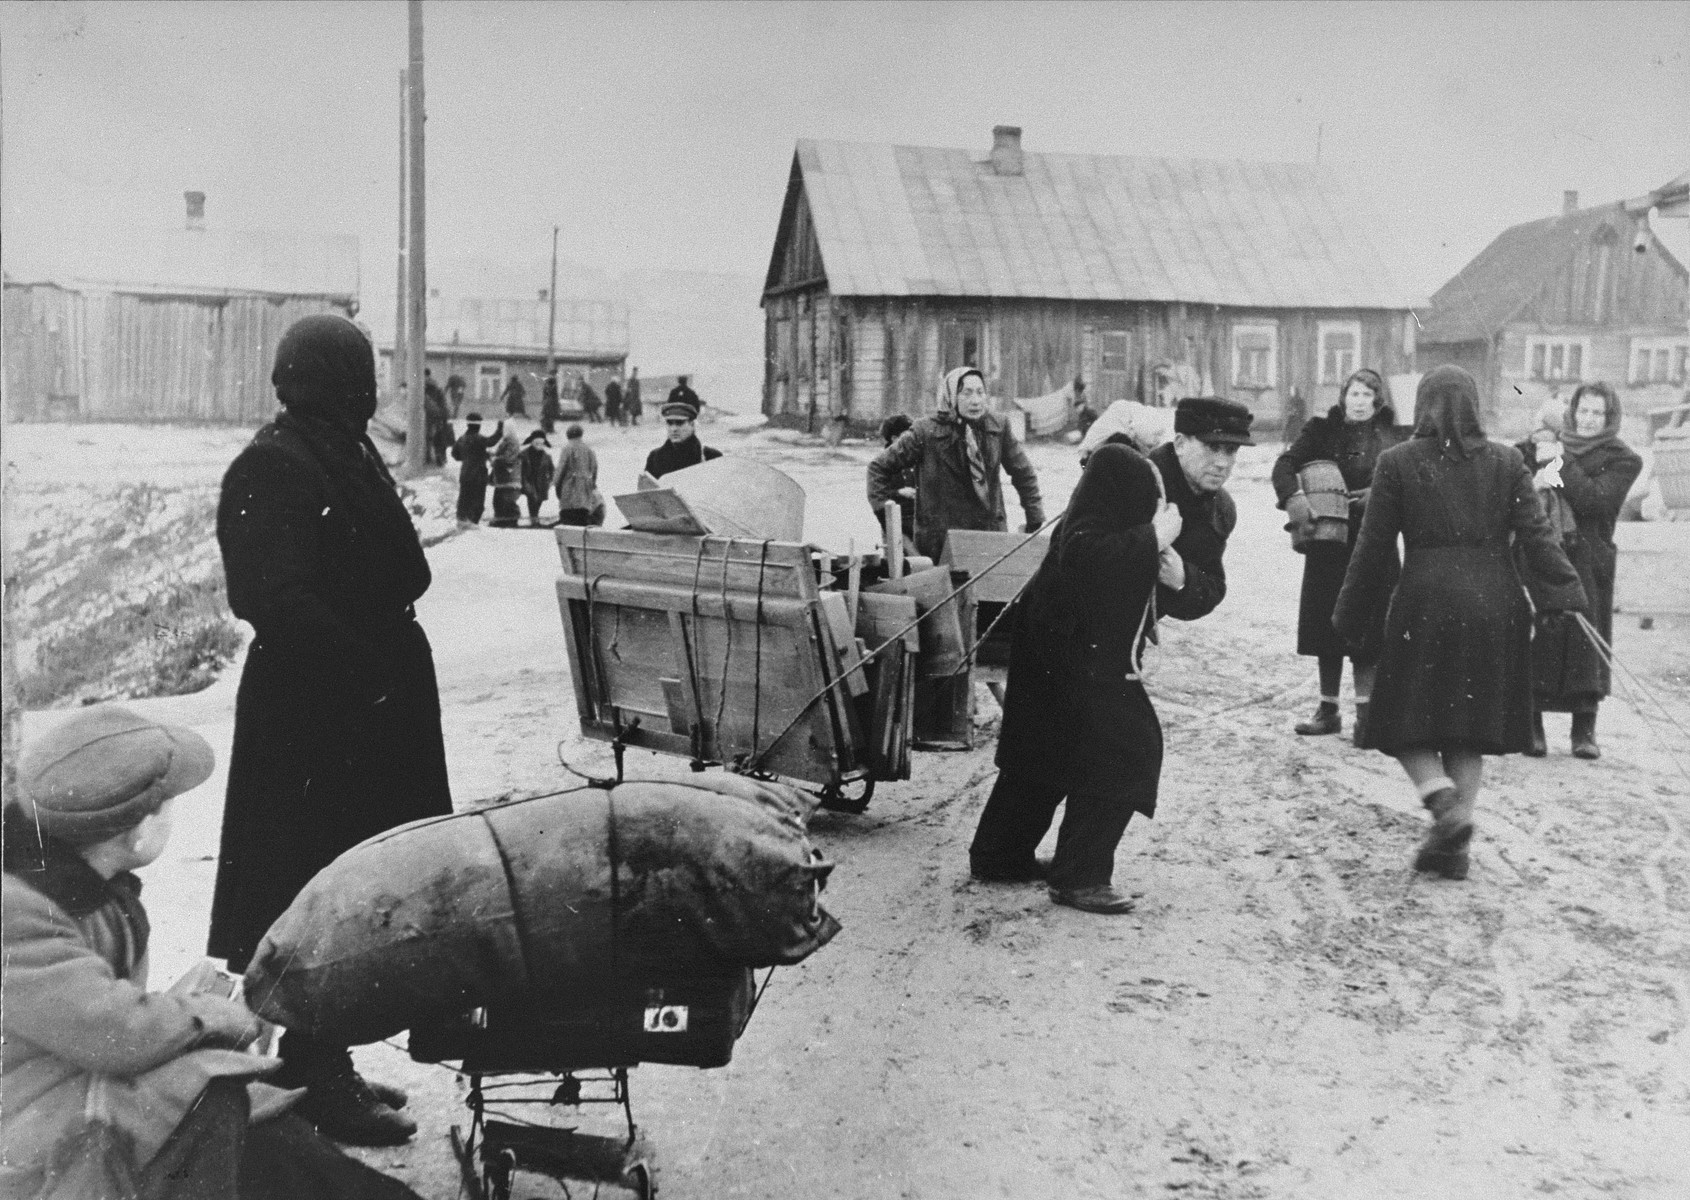 Residents of the ghetto move to new housing after the Germans reduced the borders of the Kovno ghetto.  The man pulling the disassembled wardrobe is George Kadish's brother-in-law.  He never put it together because there was not enough space in his new quarters. Clothes were hung from nails (made out of barbed wire) in the wall.